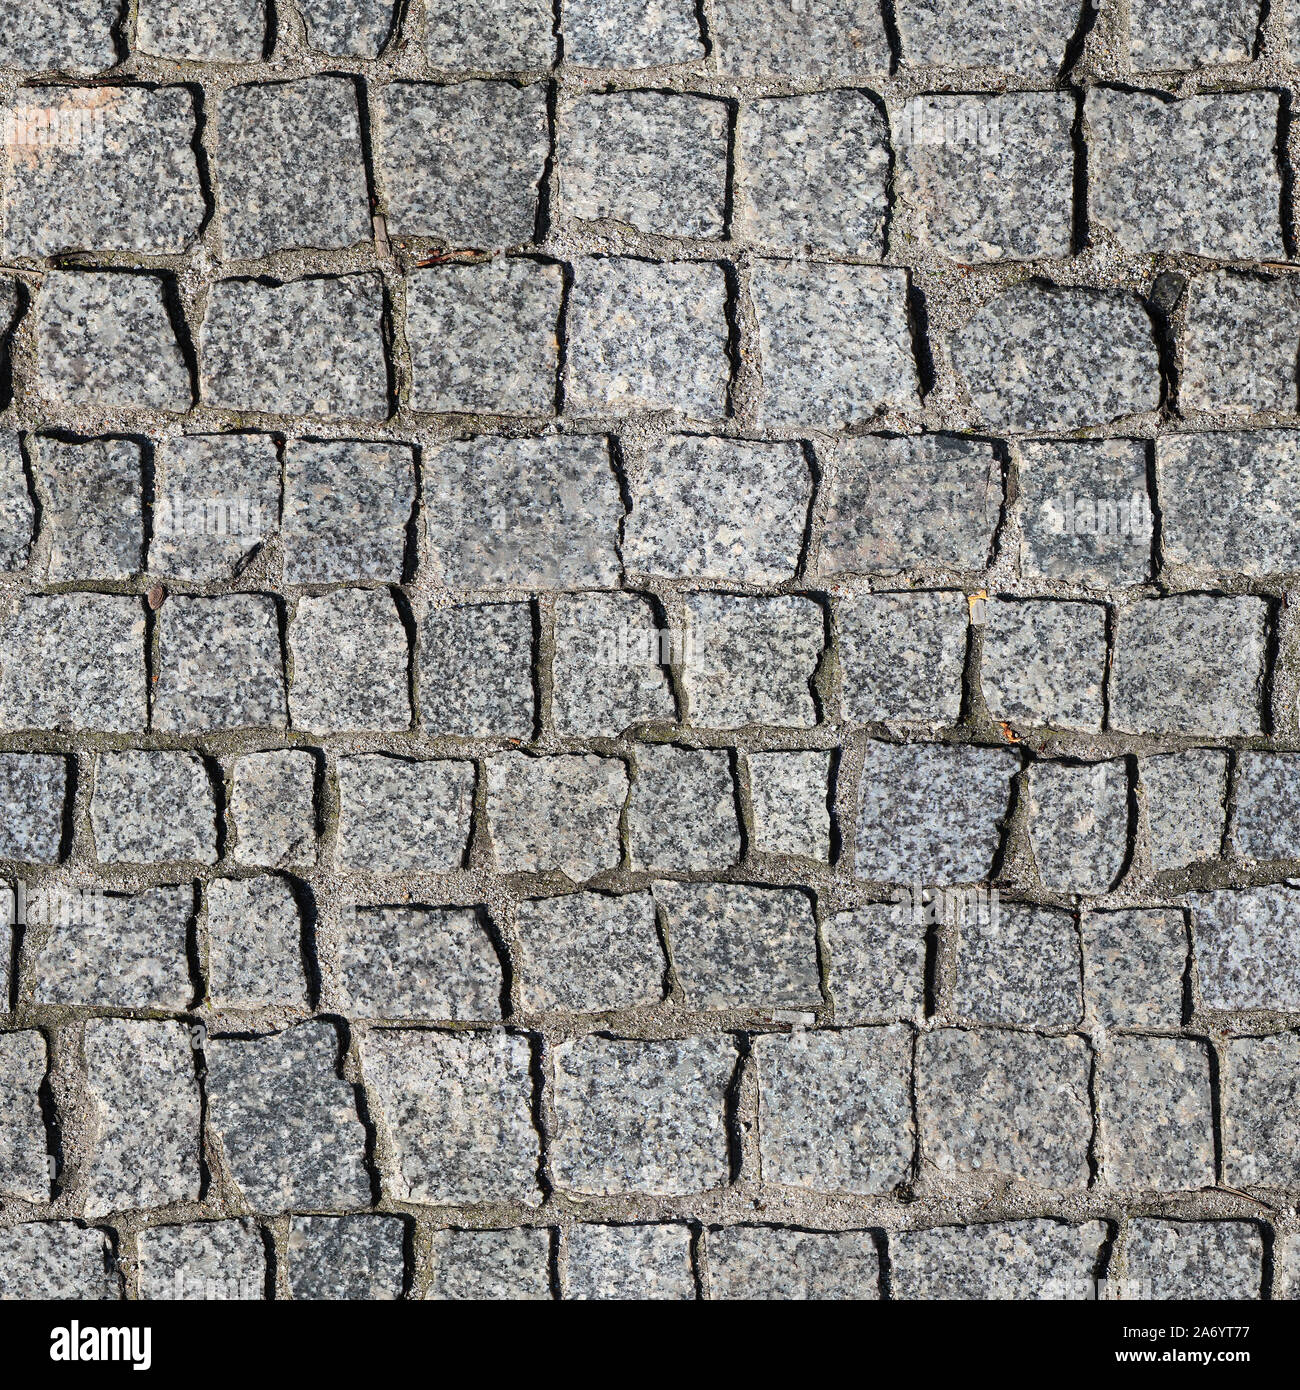 Cobblestone Paving Texture Seamless High Resolution Stock Photography And Images Alamy